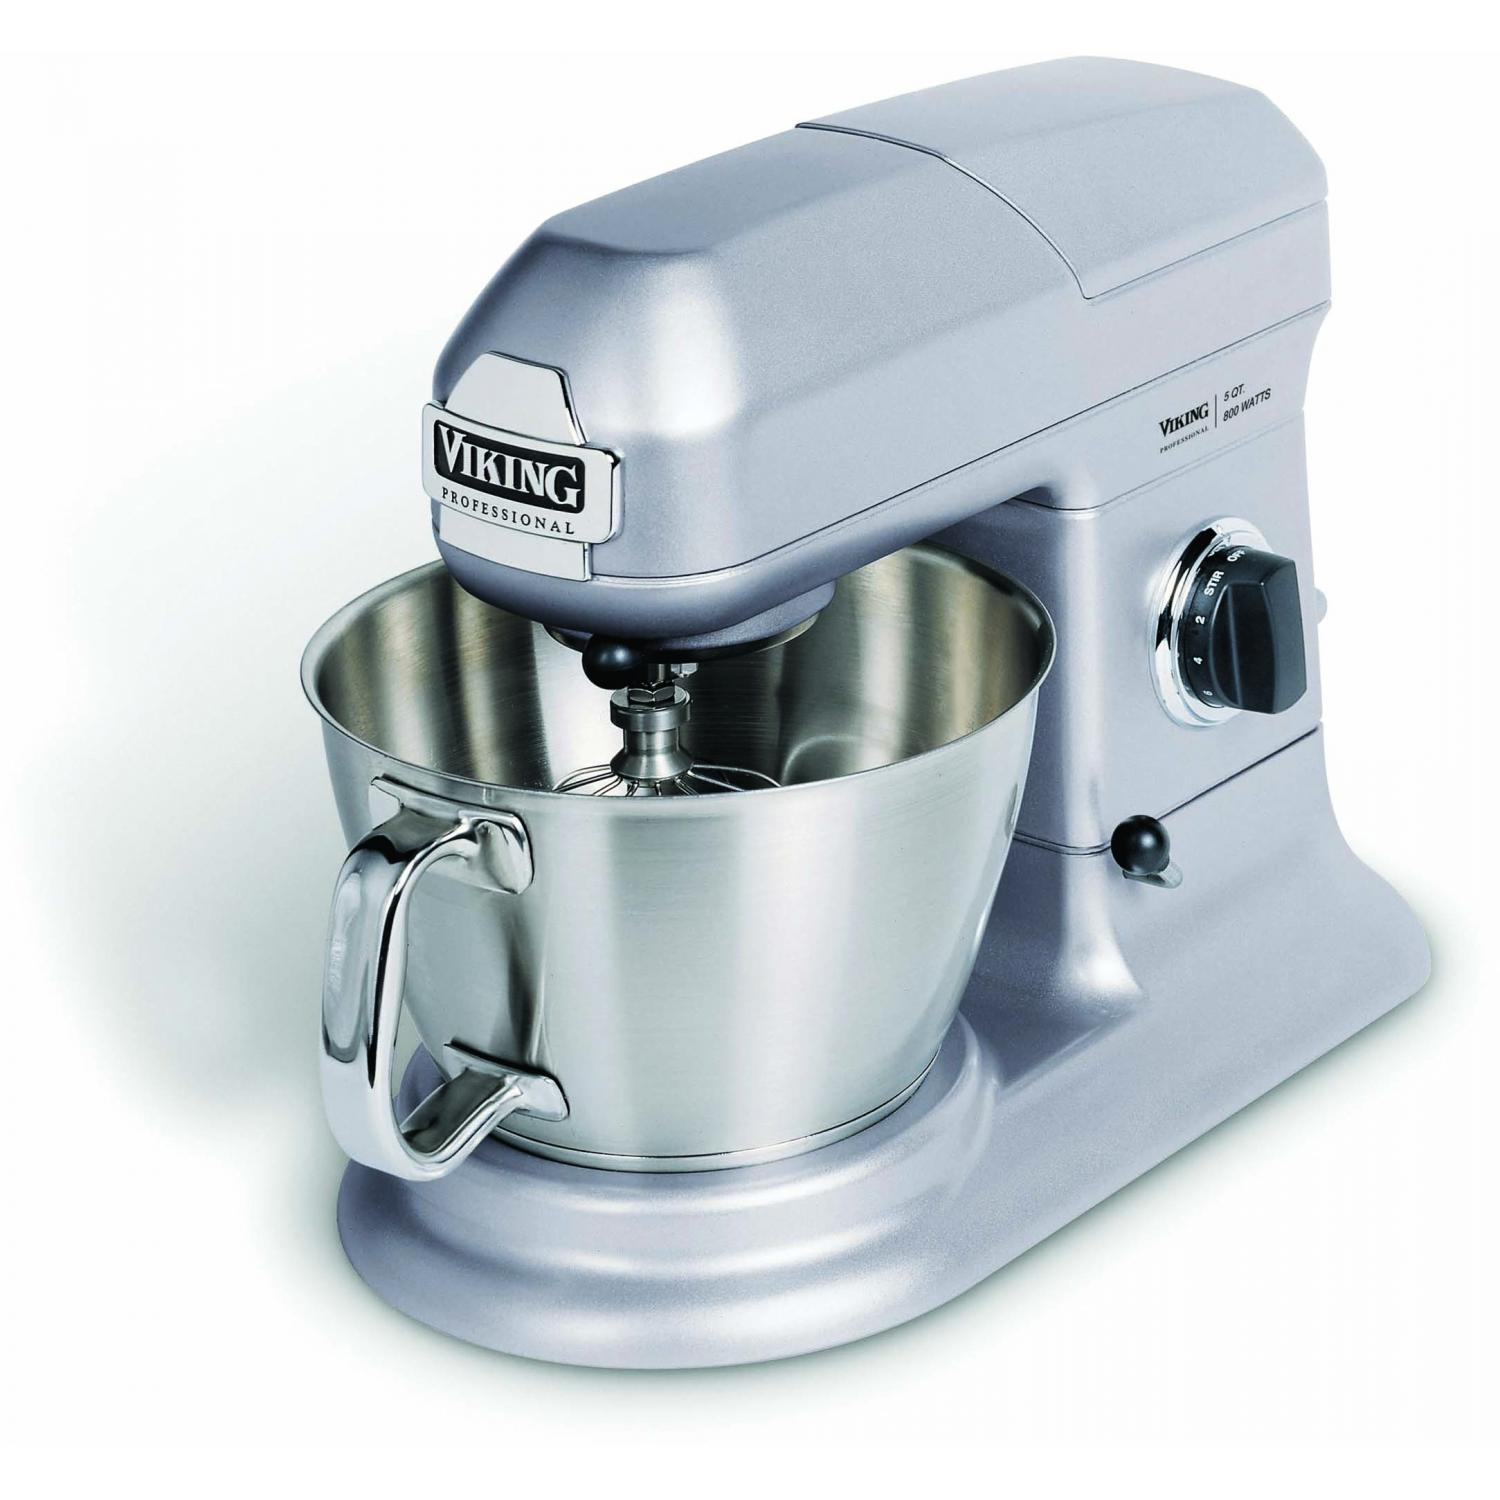 Viking VSM500SG Professional 5-Quart Stand Mixer - Stainless Gray